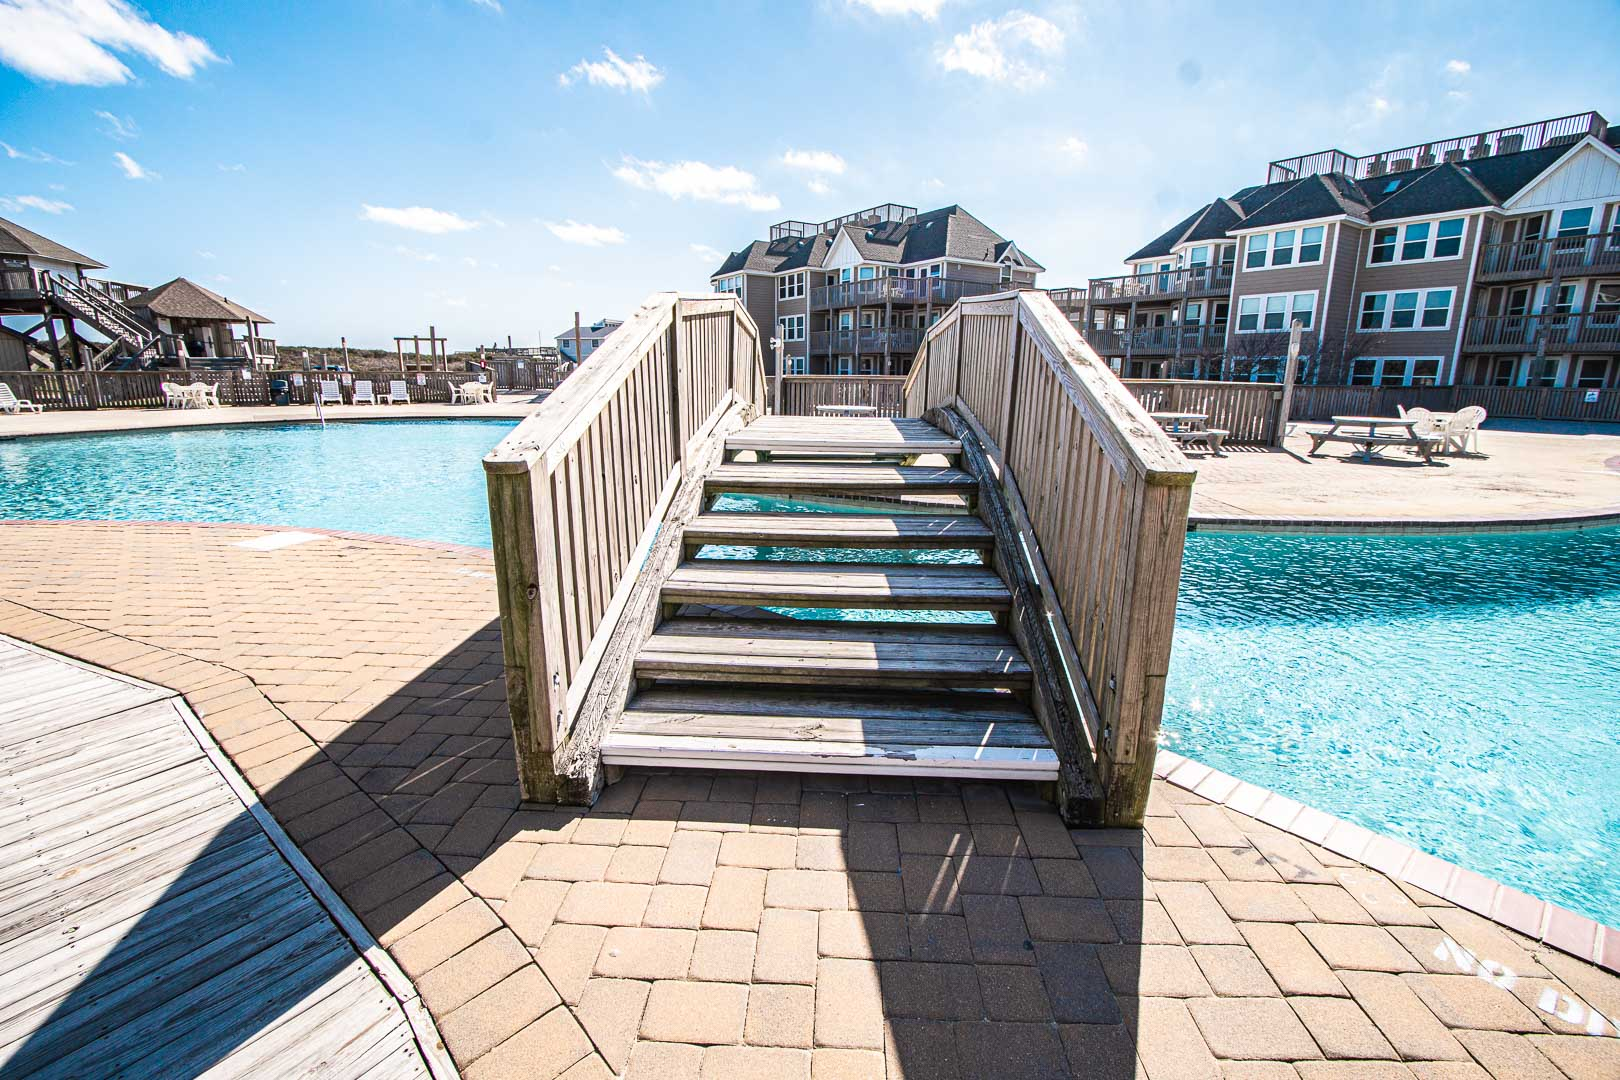 A scenic swimming pool at VRI's Barrier Island Station in North Carolina.